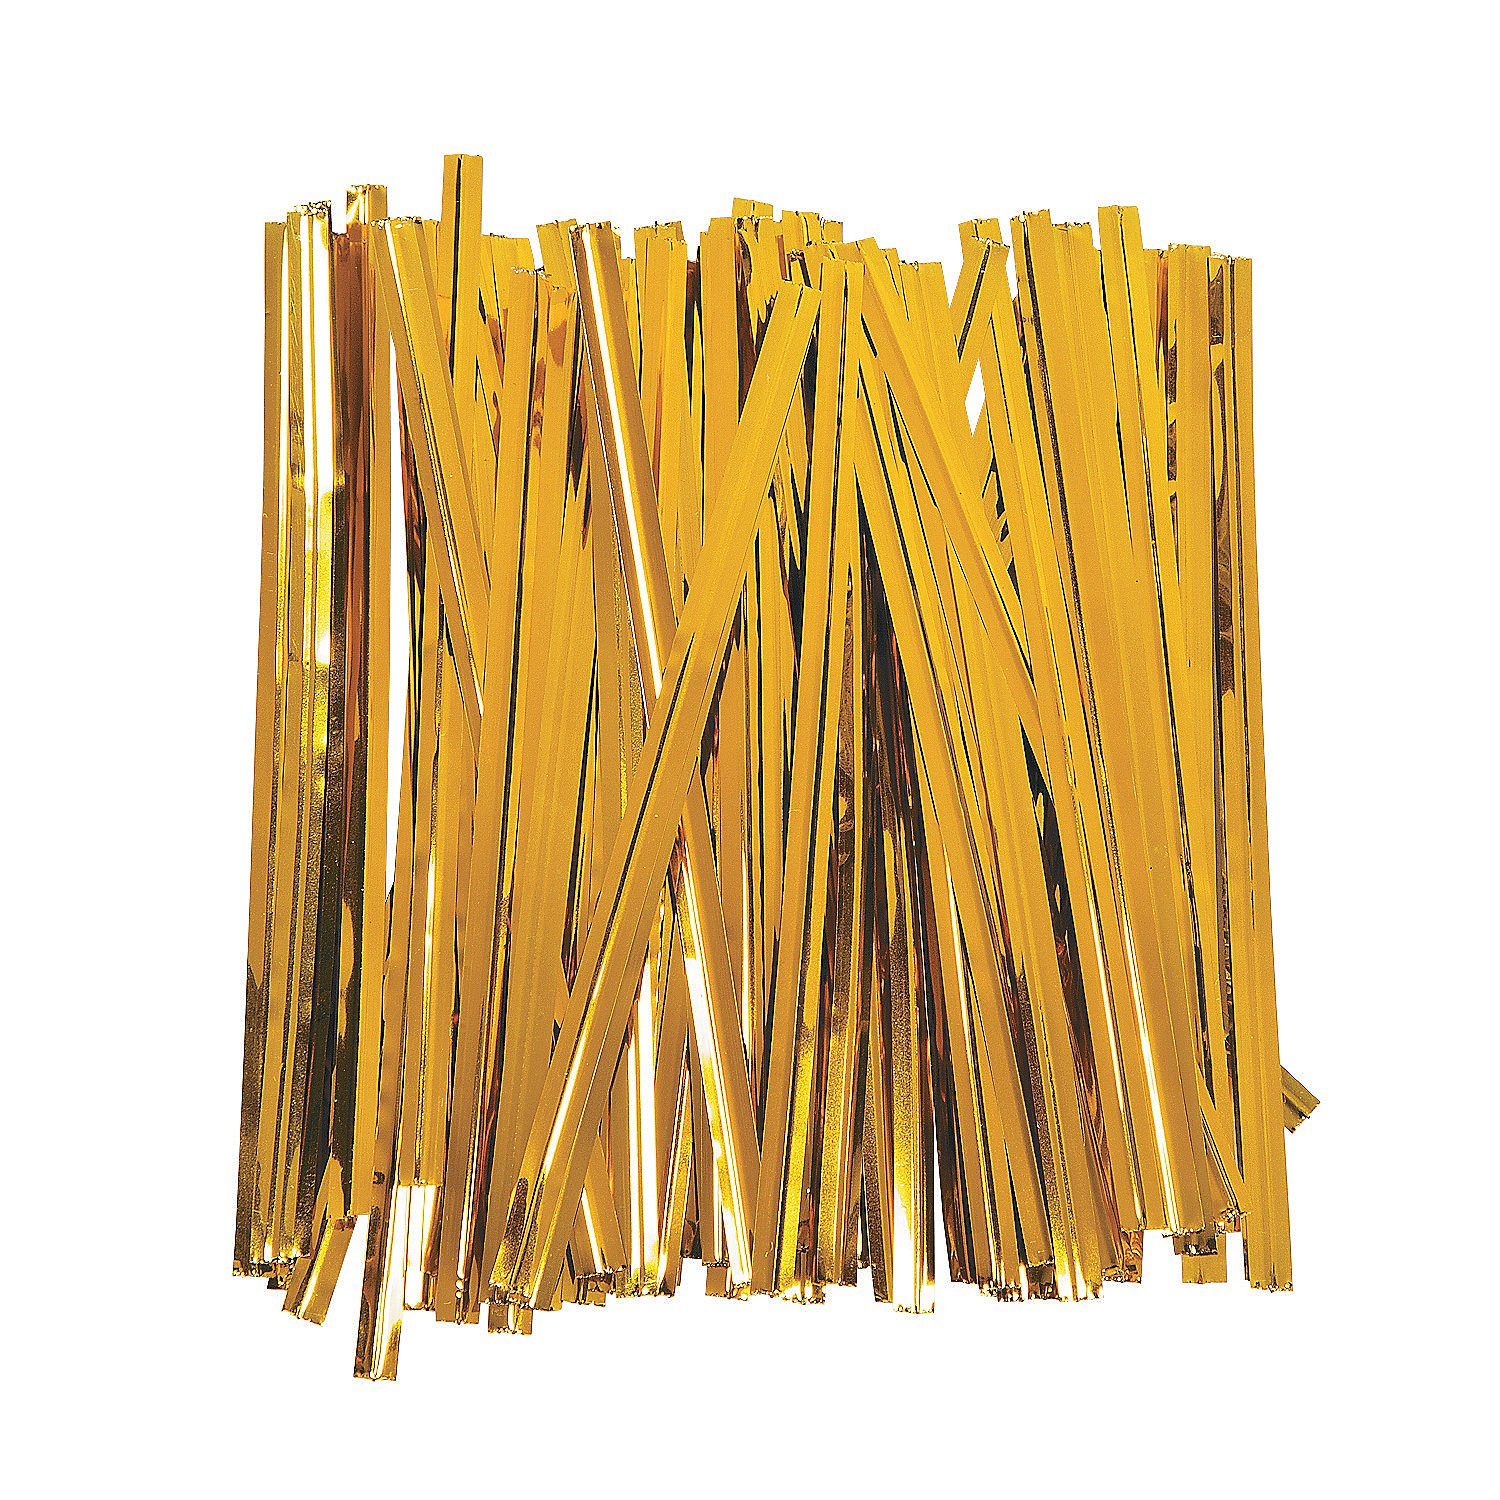 Wrappings Party Supplies Bows /& Ribbons /& Ties Fun Express Gold Metallic Twist Ties for Wedding 600 Pieces Wedding